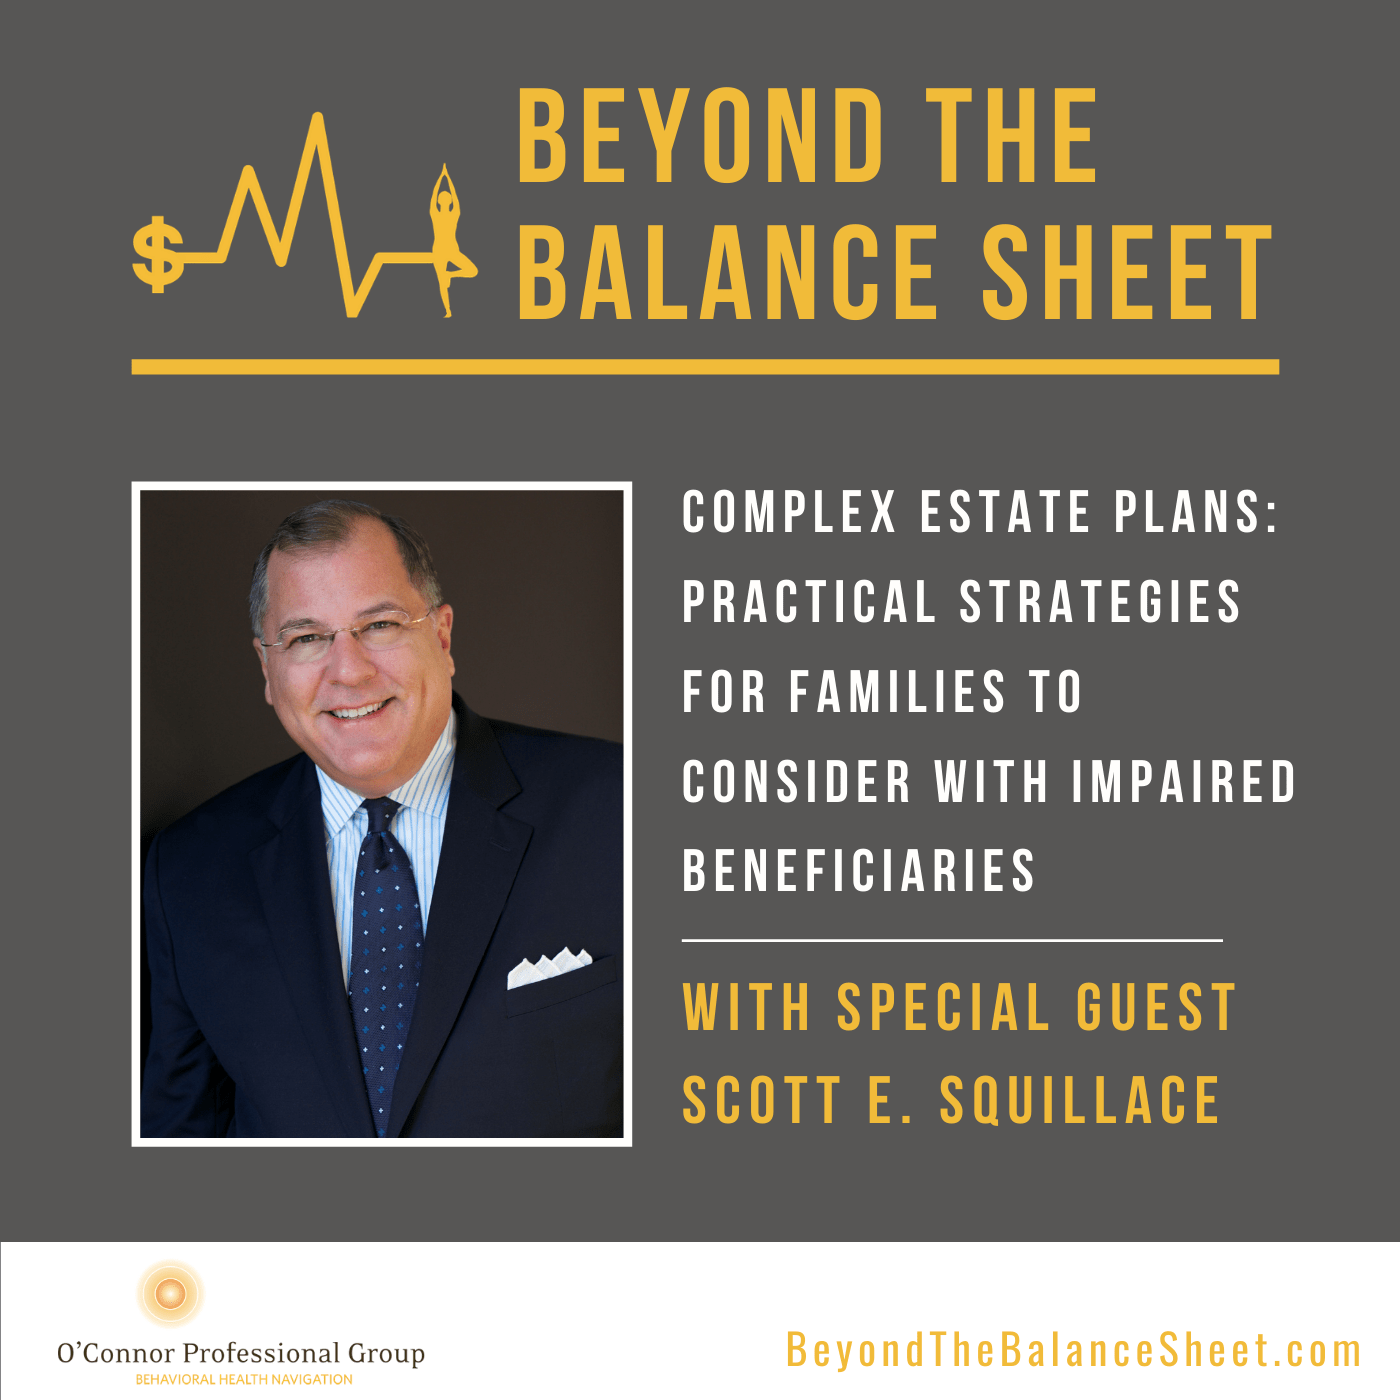 Beyond the Balance Sheet